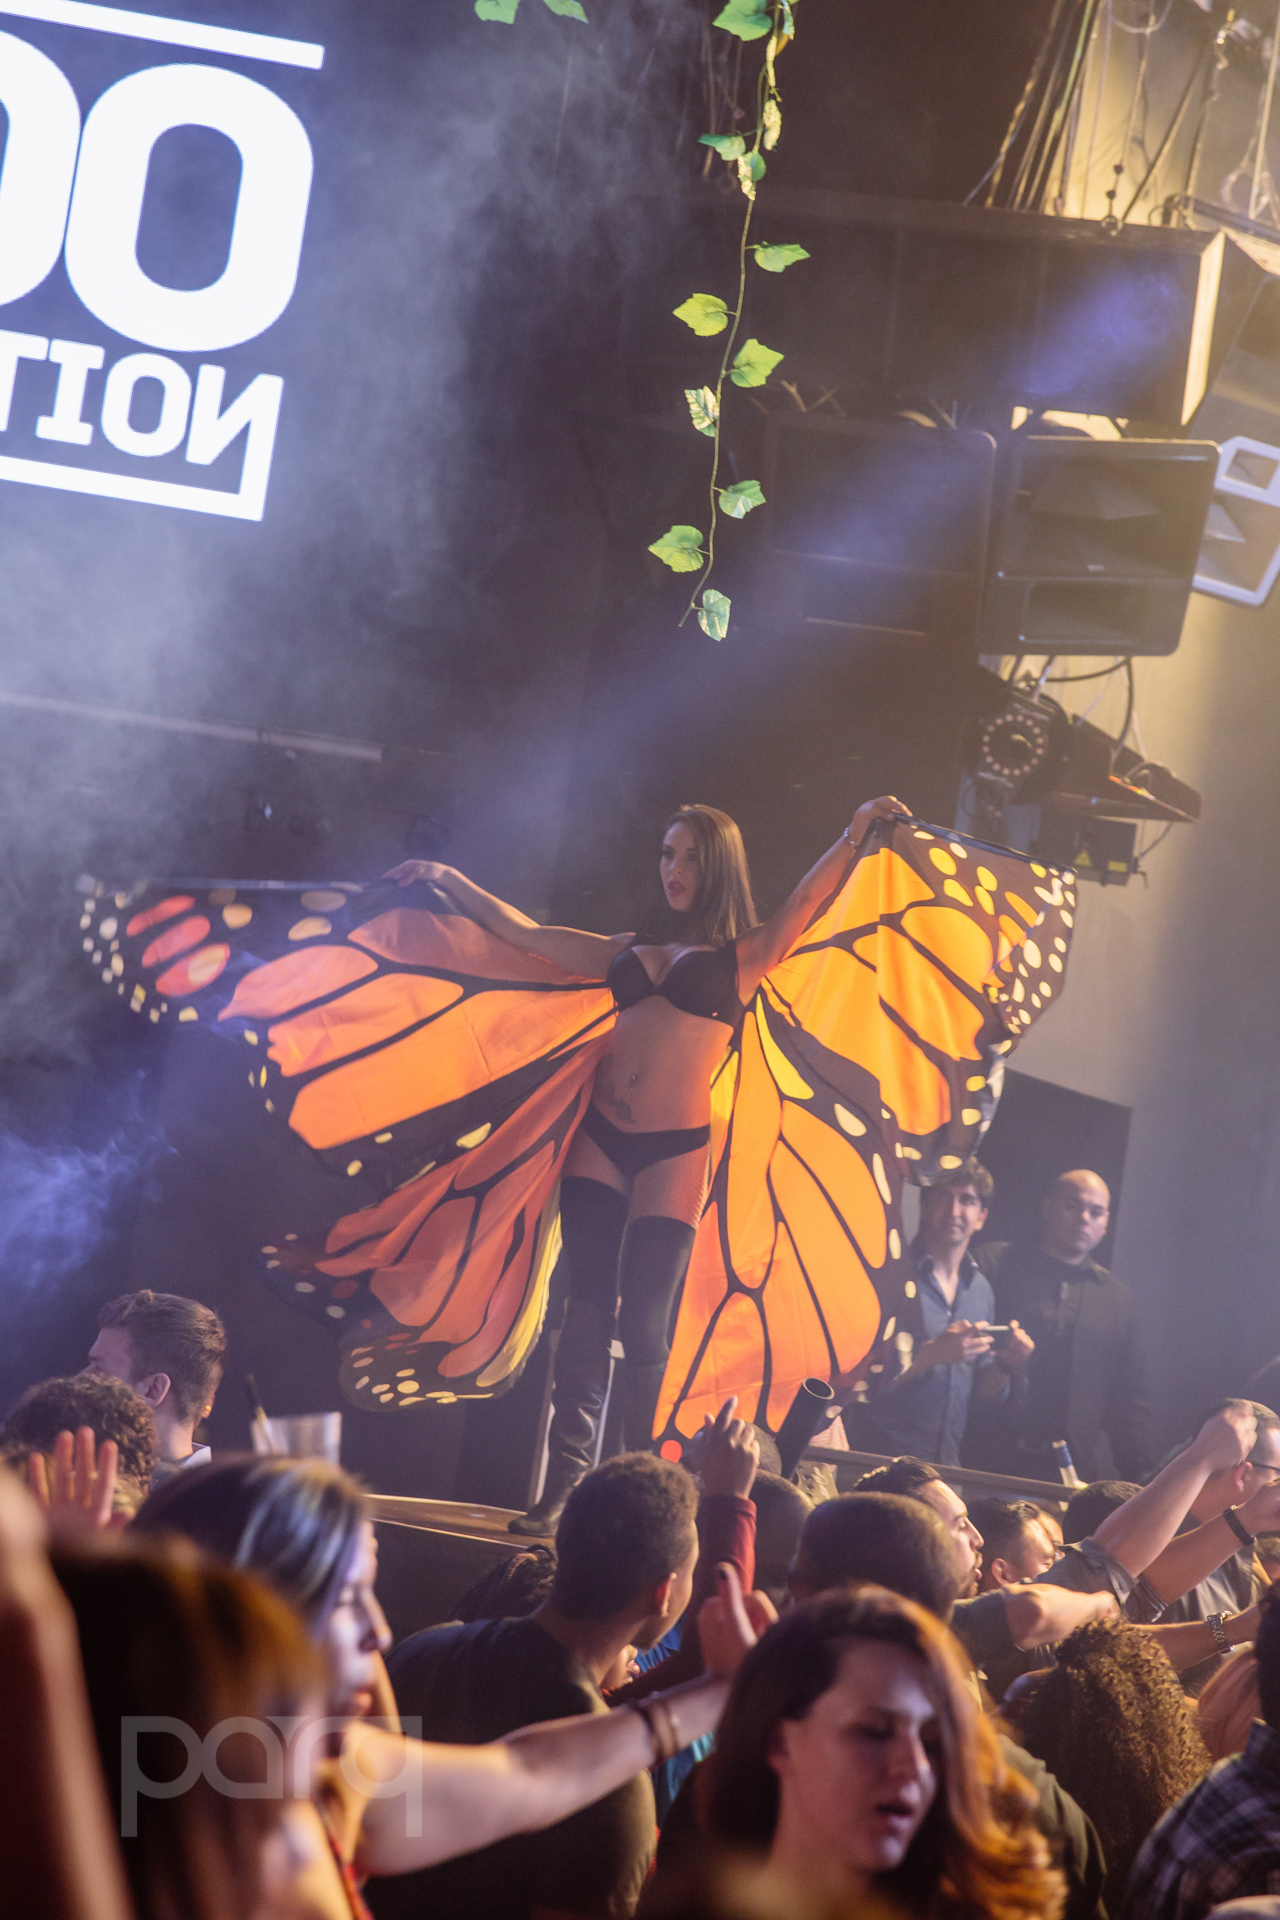 04.22.17 Zoo Funktion-15.jpg